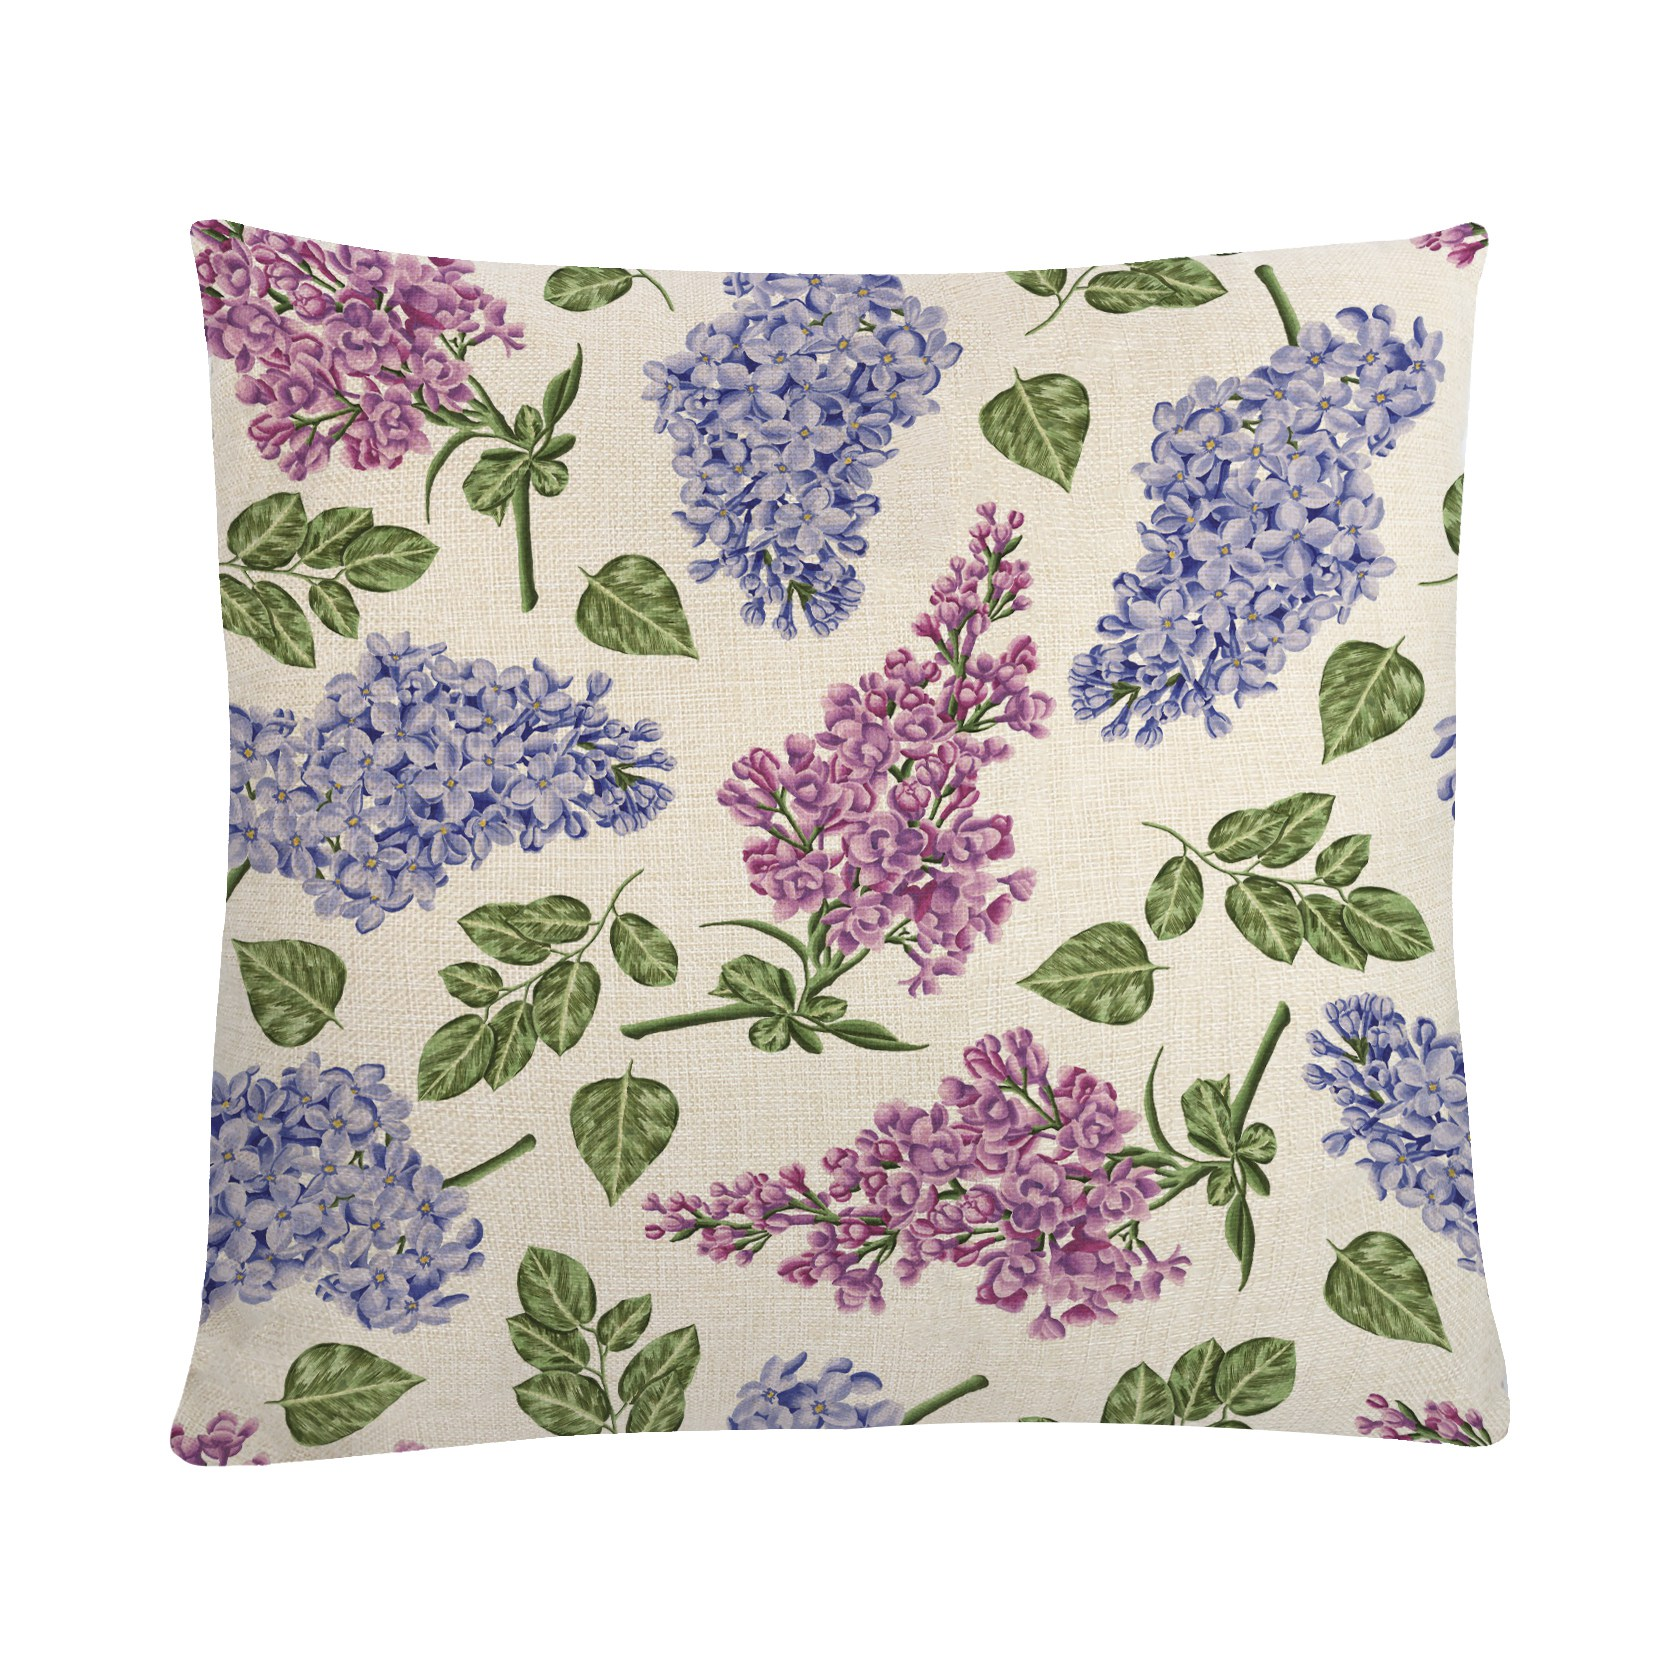 Romantic Cushion Cover Purple Flowers Printed Pillowcase For Sofa Chair Bed Room Decoration 45*45cm Cotton Linen Pillows Covers